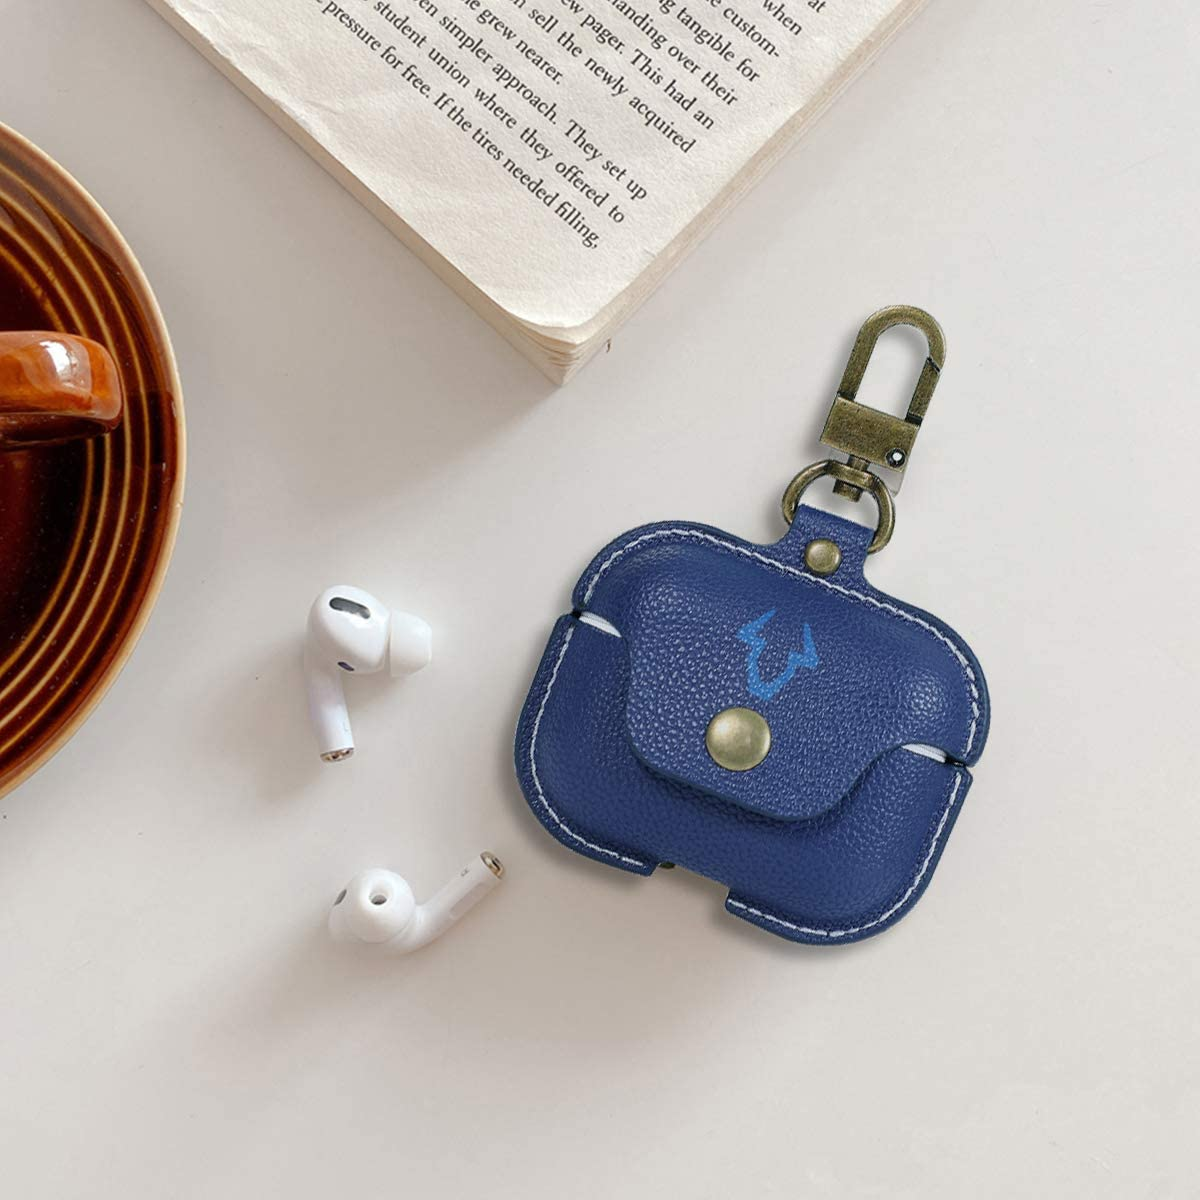 Airpods Pro Leather Case//Protective Cover,3D Luxury Fashion Ultra-Thin Designer Leather Cover with Keychain Hook,Slim-Fit,Shockproof and Anti Scratching,Support Wireless Charging.